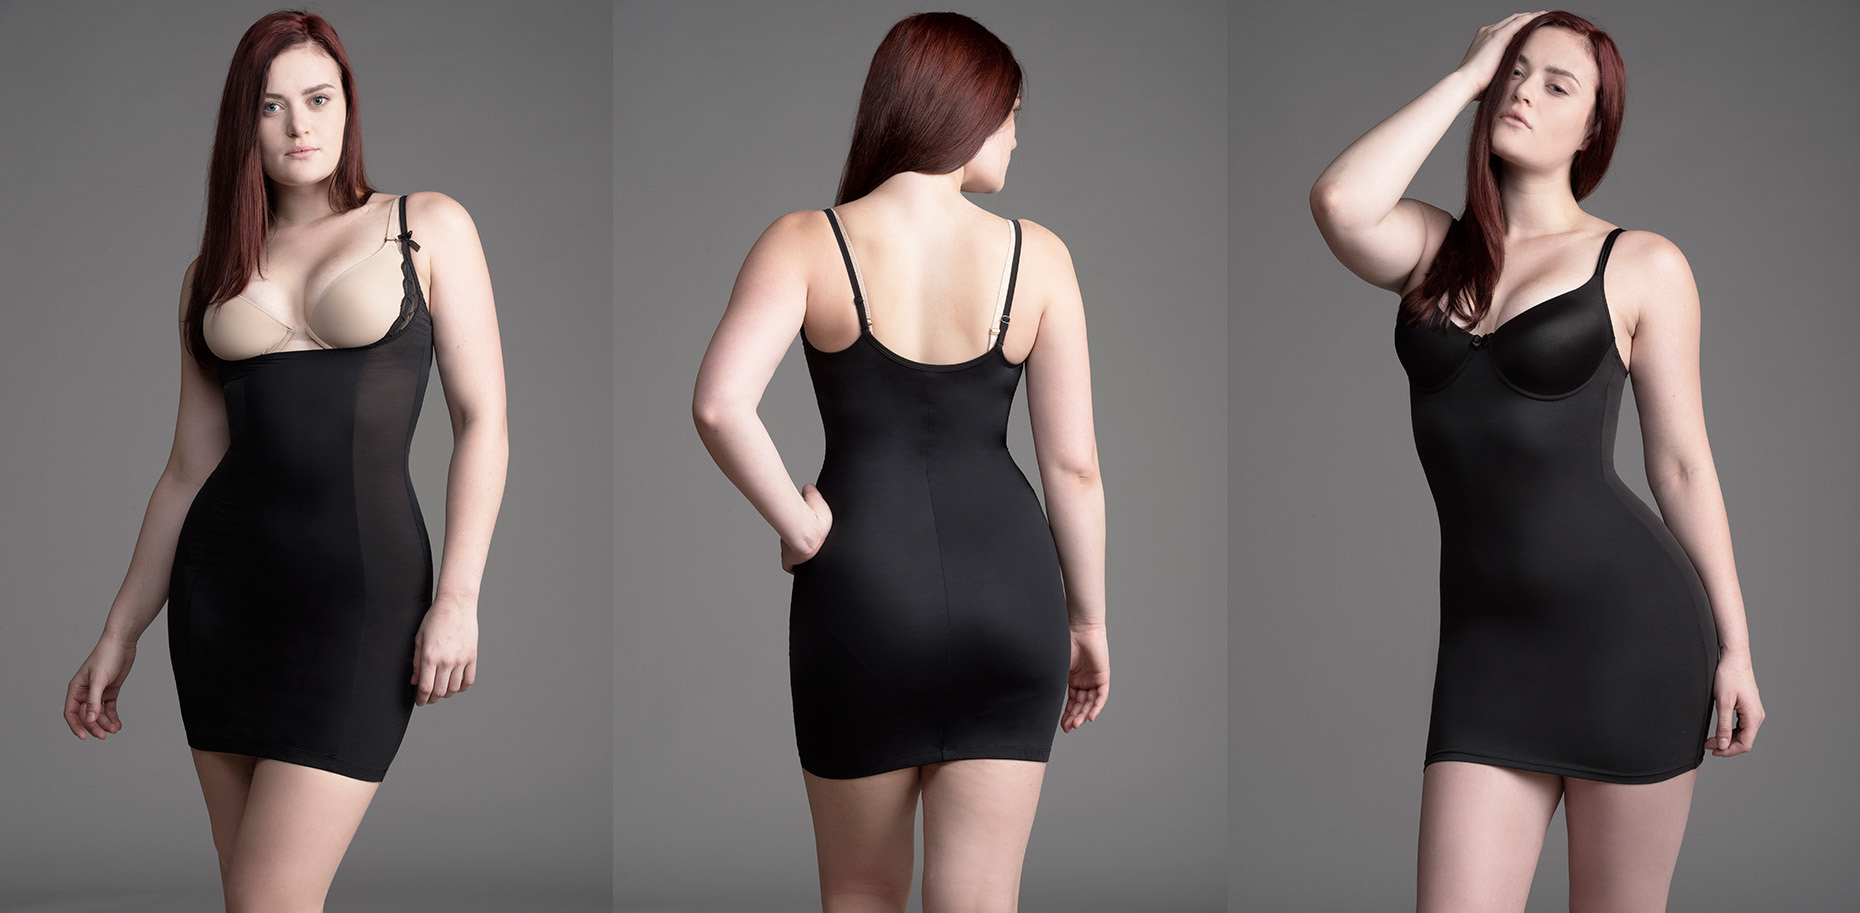 HourGlass-Angel_Shapewear_Corsets_Body-Shaping_RHanelPhotography